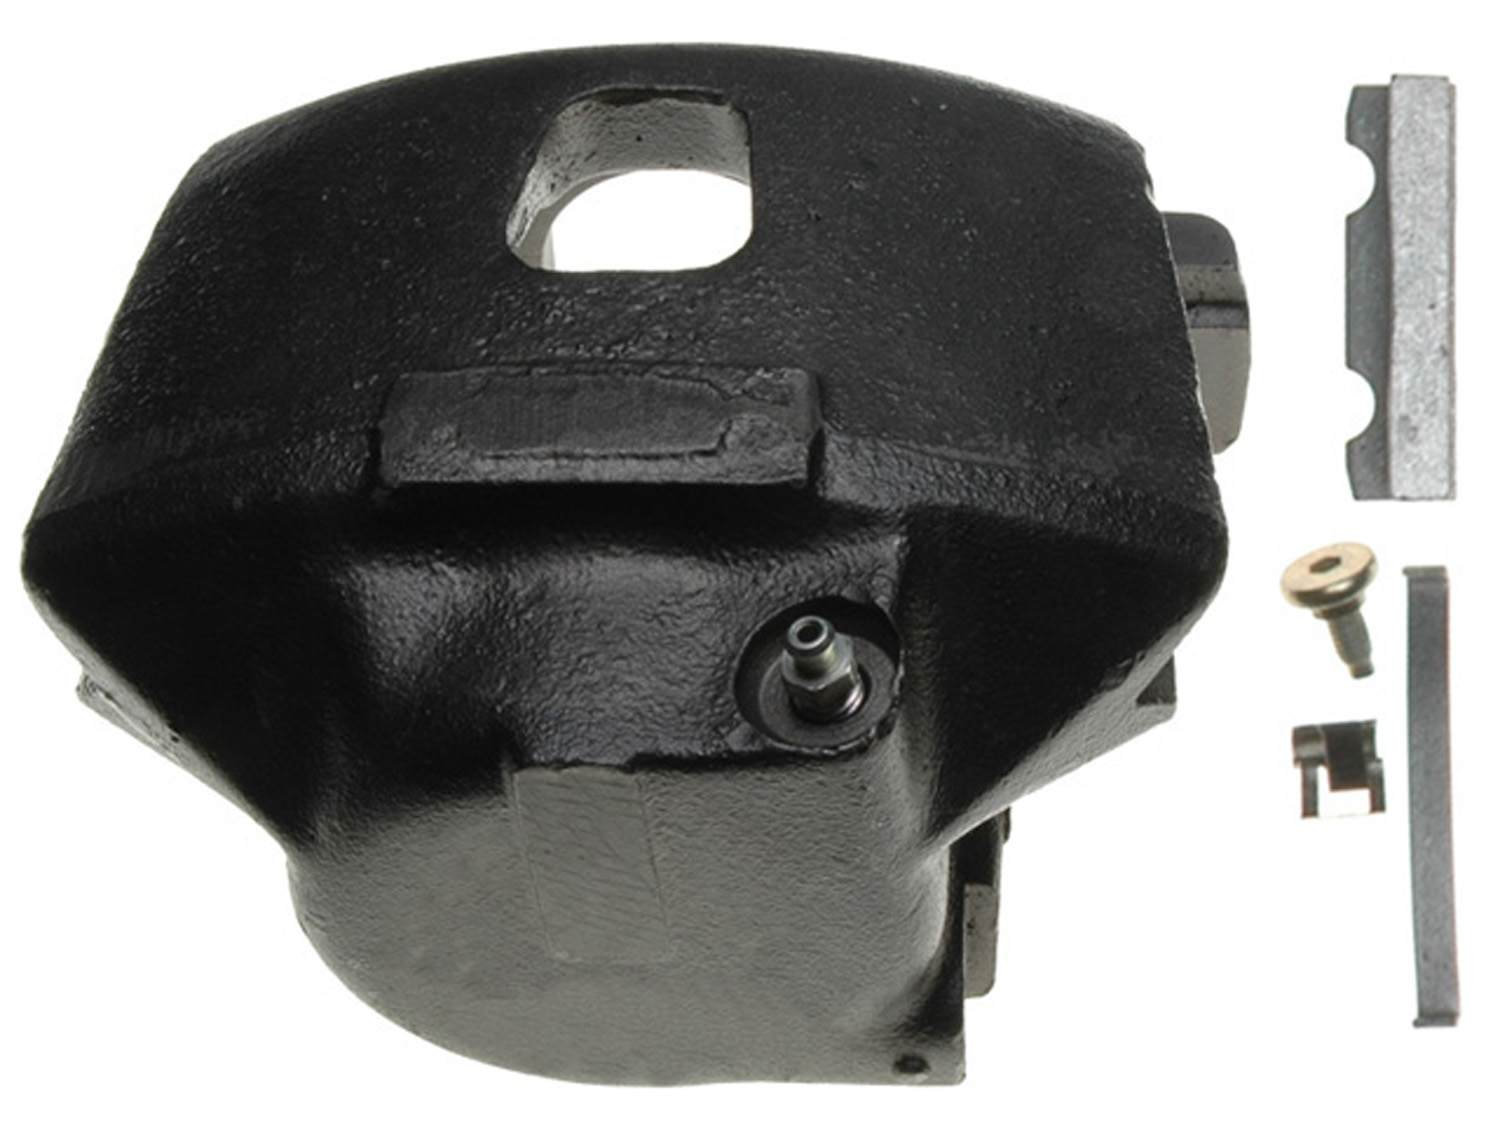 ACDELCO PROFESSIONAL BRAKES - Reman Friction Ready Non-Coated Disc Brake Caliper (Front Left) - ADU 18FR652